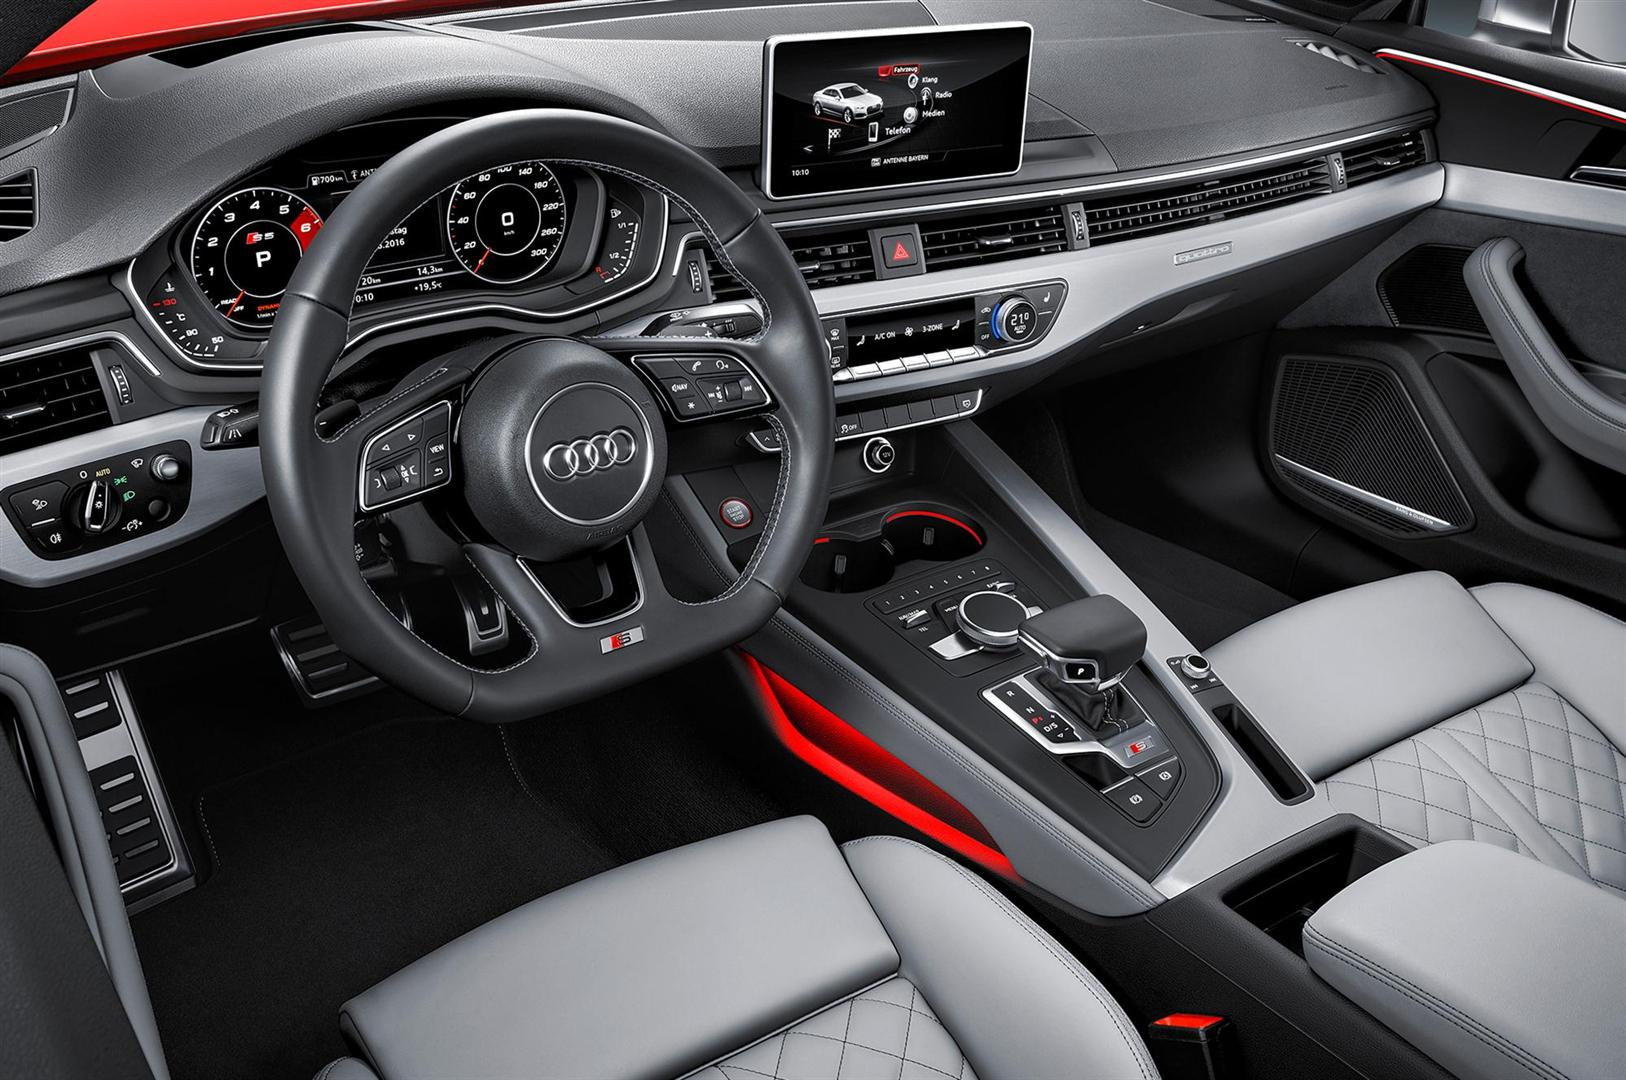 2019 Audi RS 5 Interior Changes Dashboard